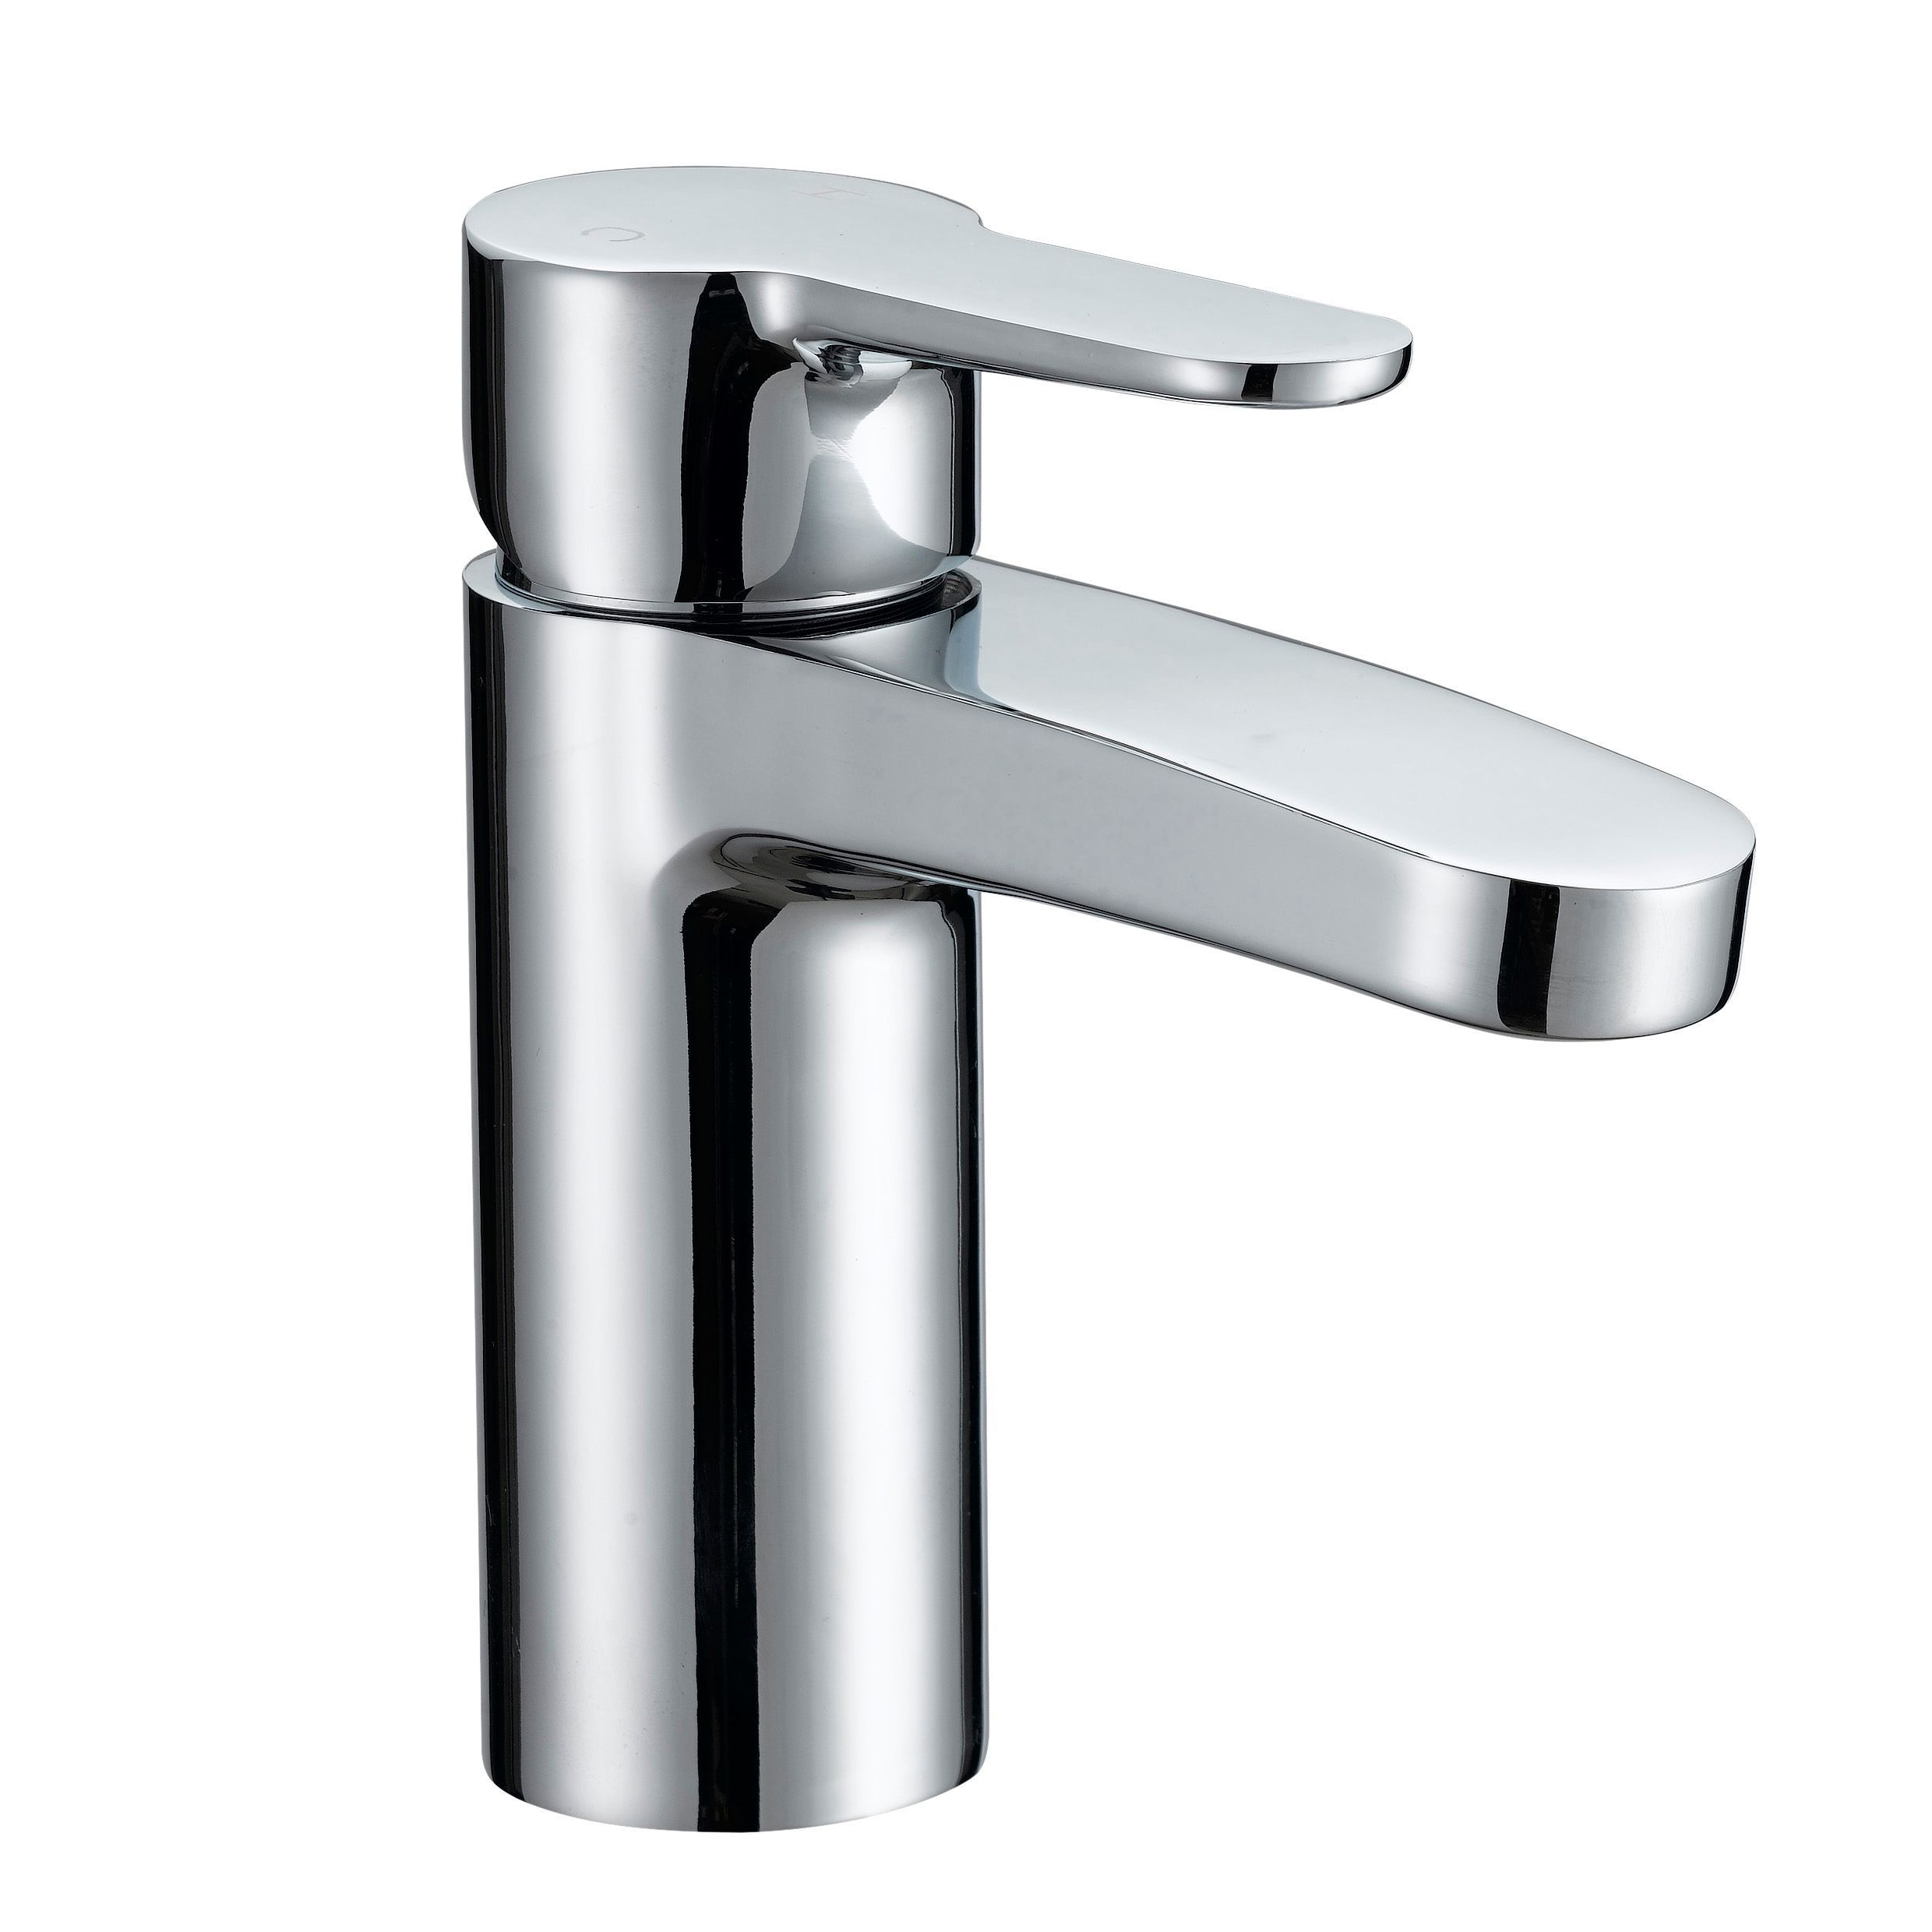 Cooke lewis calista 1 lever basin mixer tap B q bathroom design service